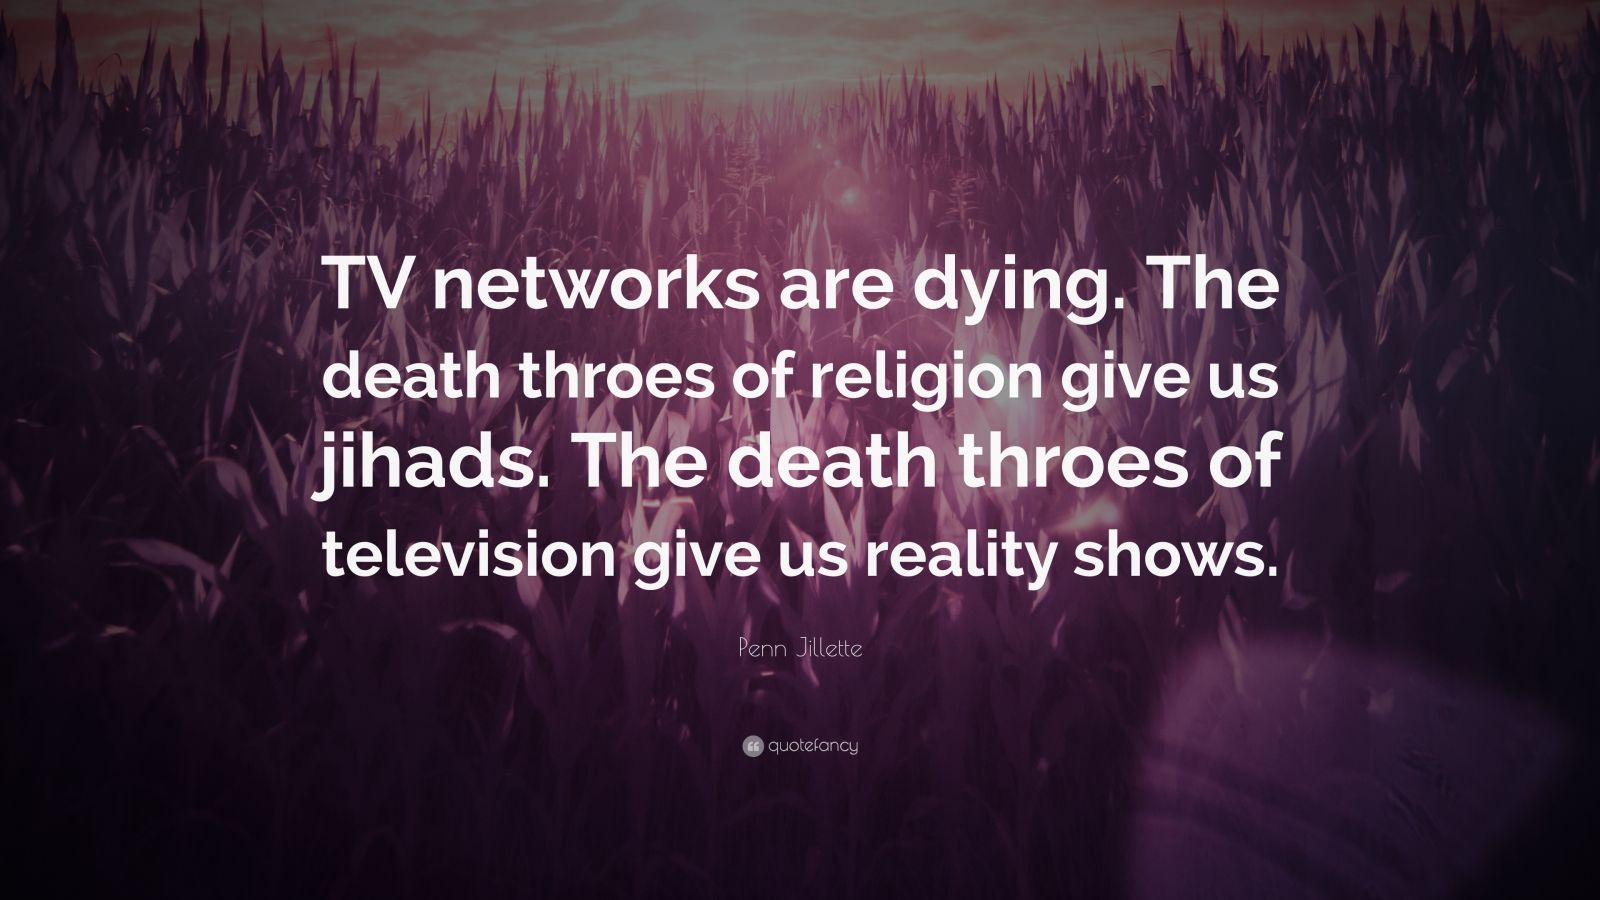 """Penn Jillette Quote: """"TV networks are dying. The death throes of religion give us jihads. The death throes of television give us reality shows."""""""